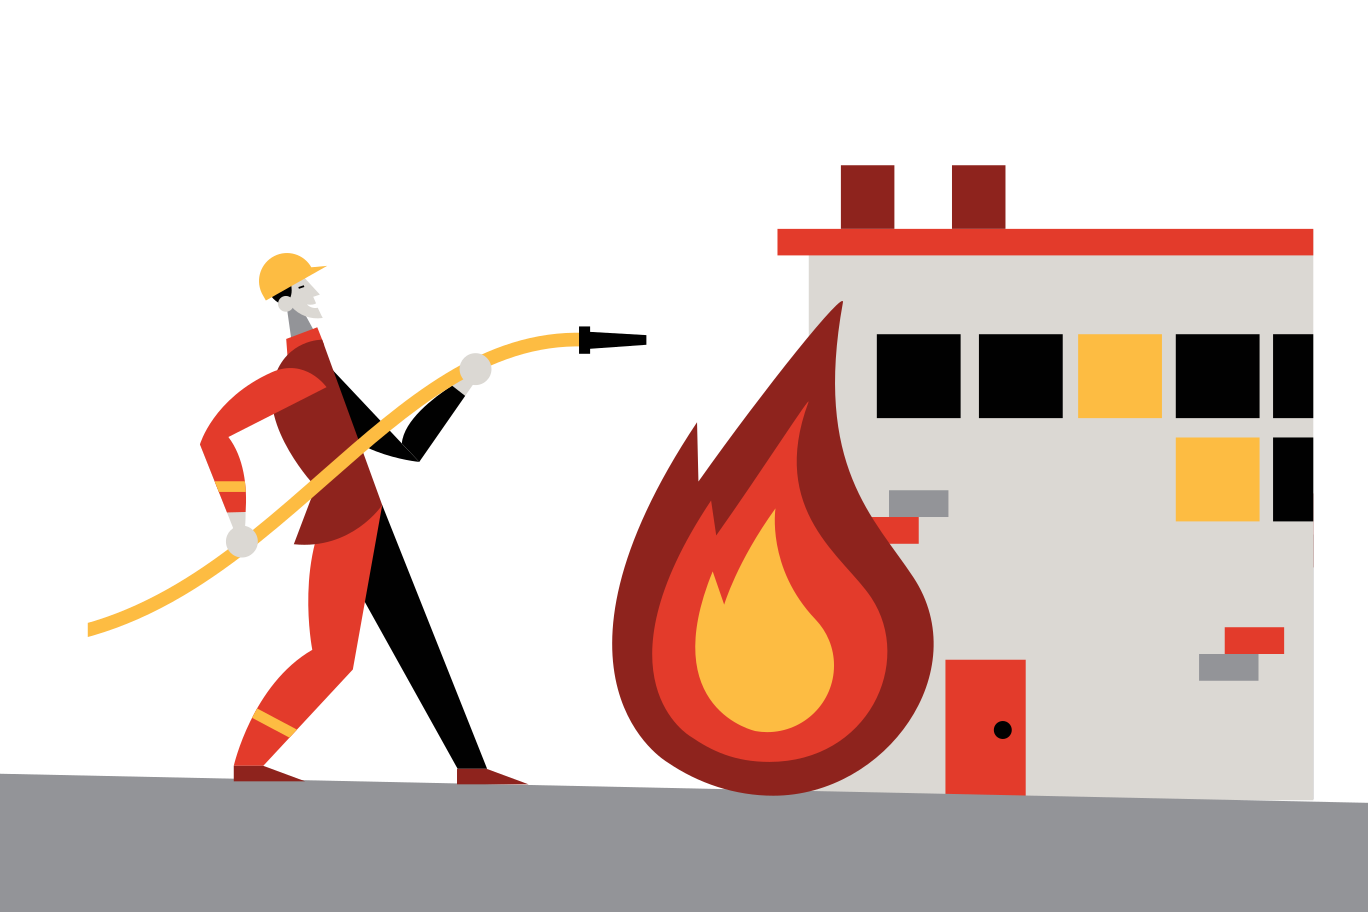 illustration of a firefighter with a hose pointed at a flame.